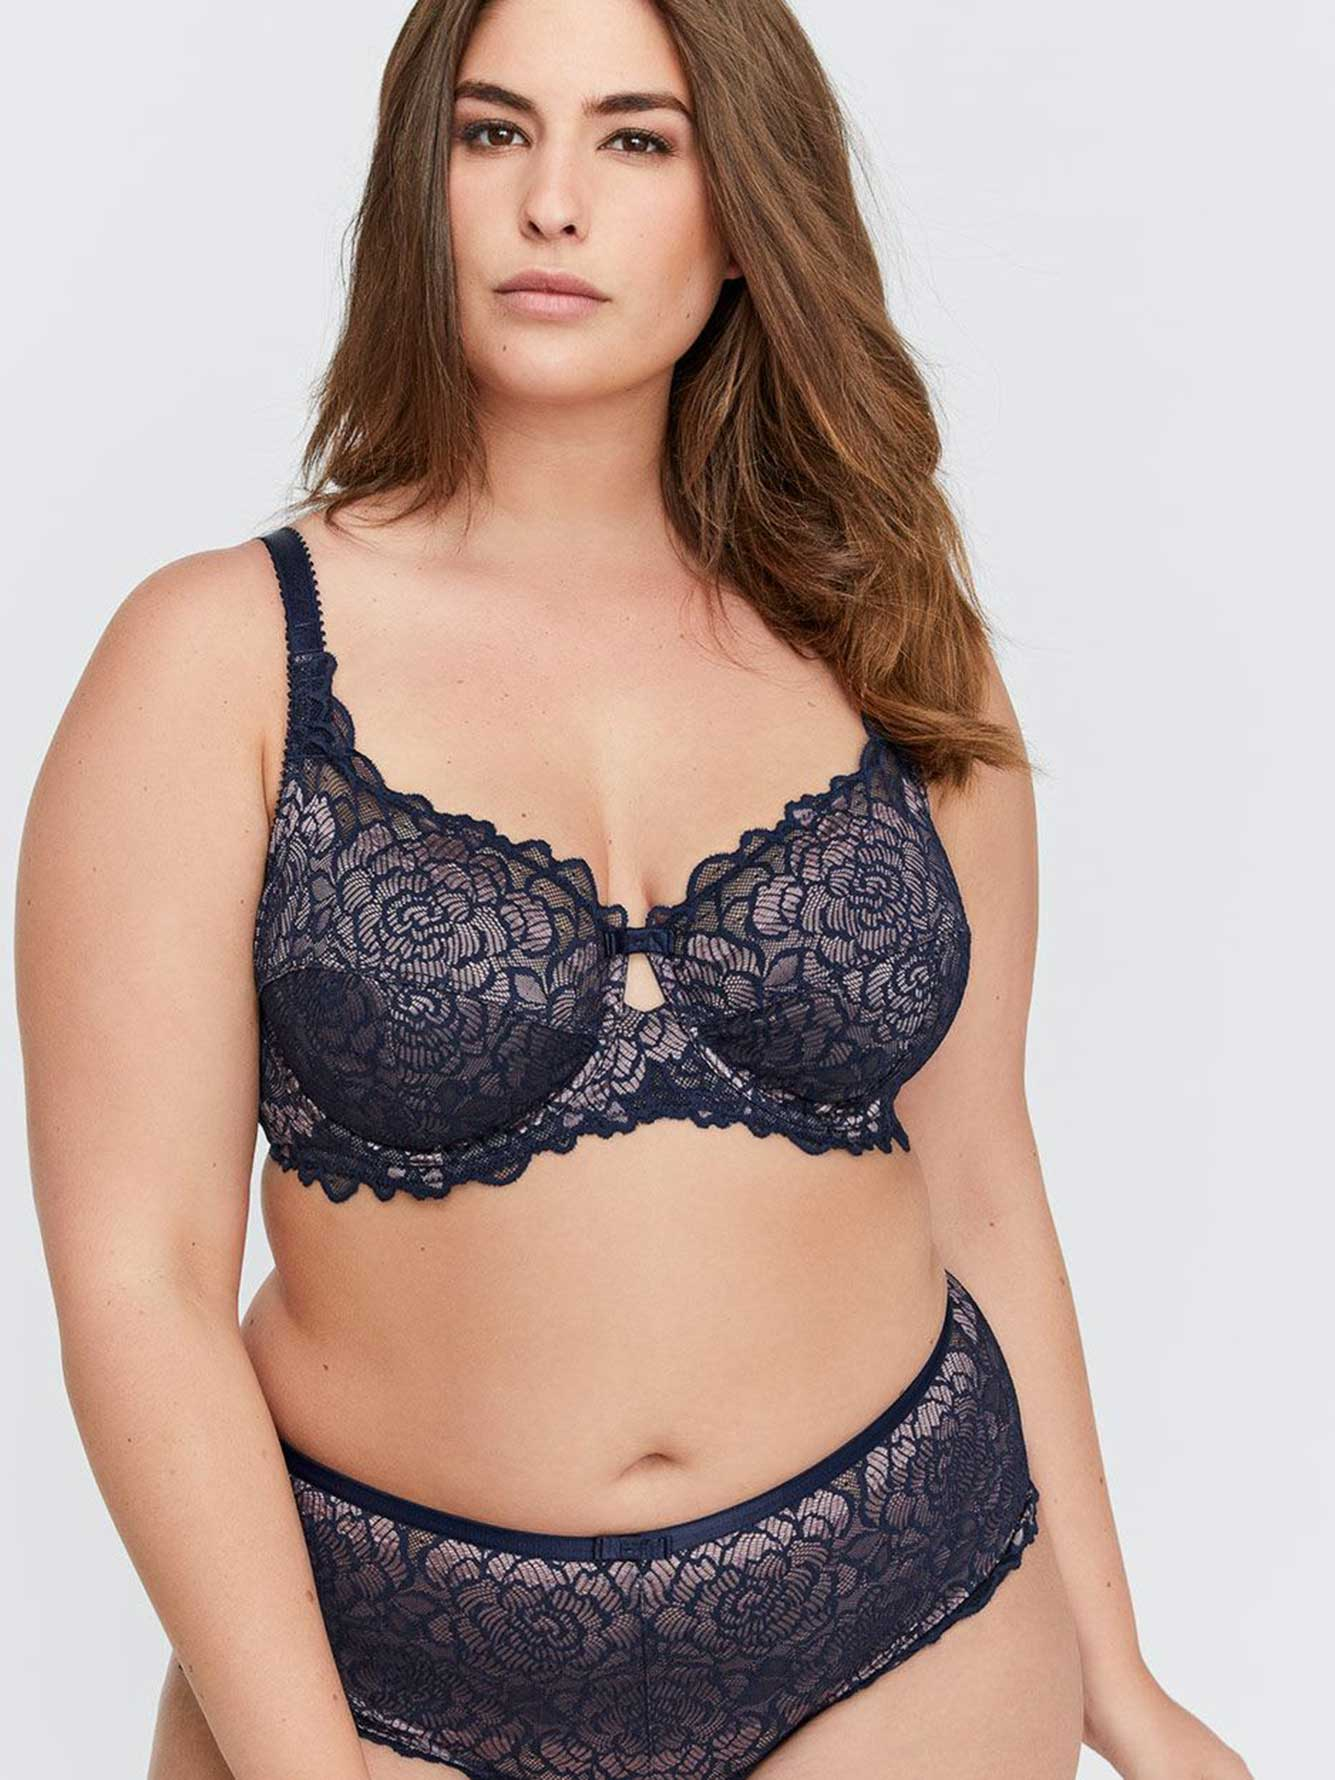 a3a8a28520 Femme Couture Cross Dyed Lace Bra - Déesse Collection